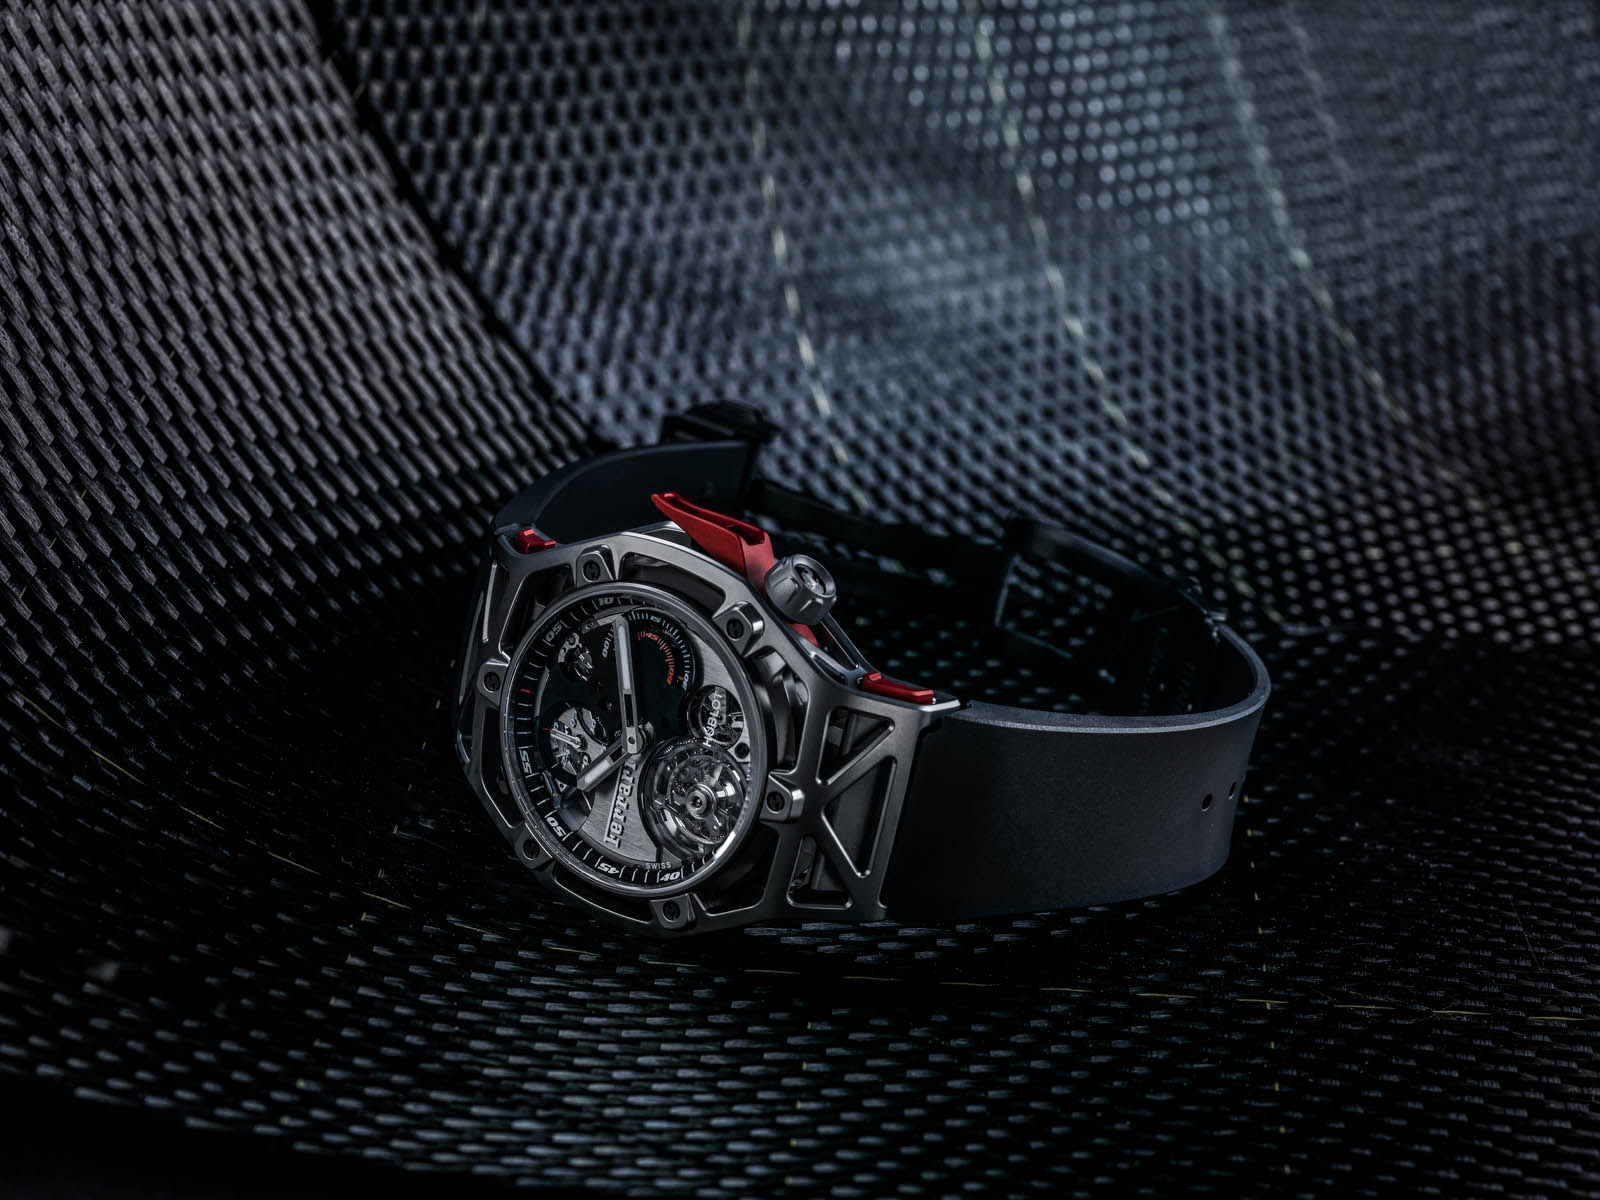 Hublot Techframe (11)